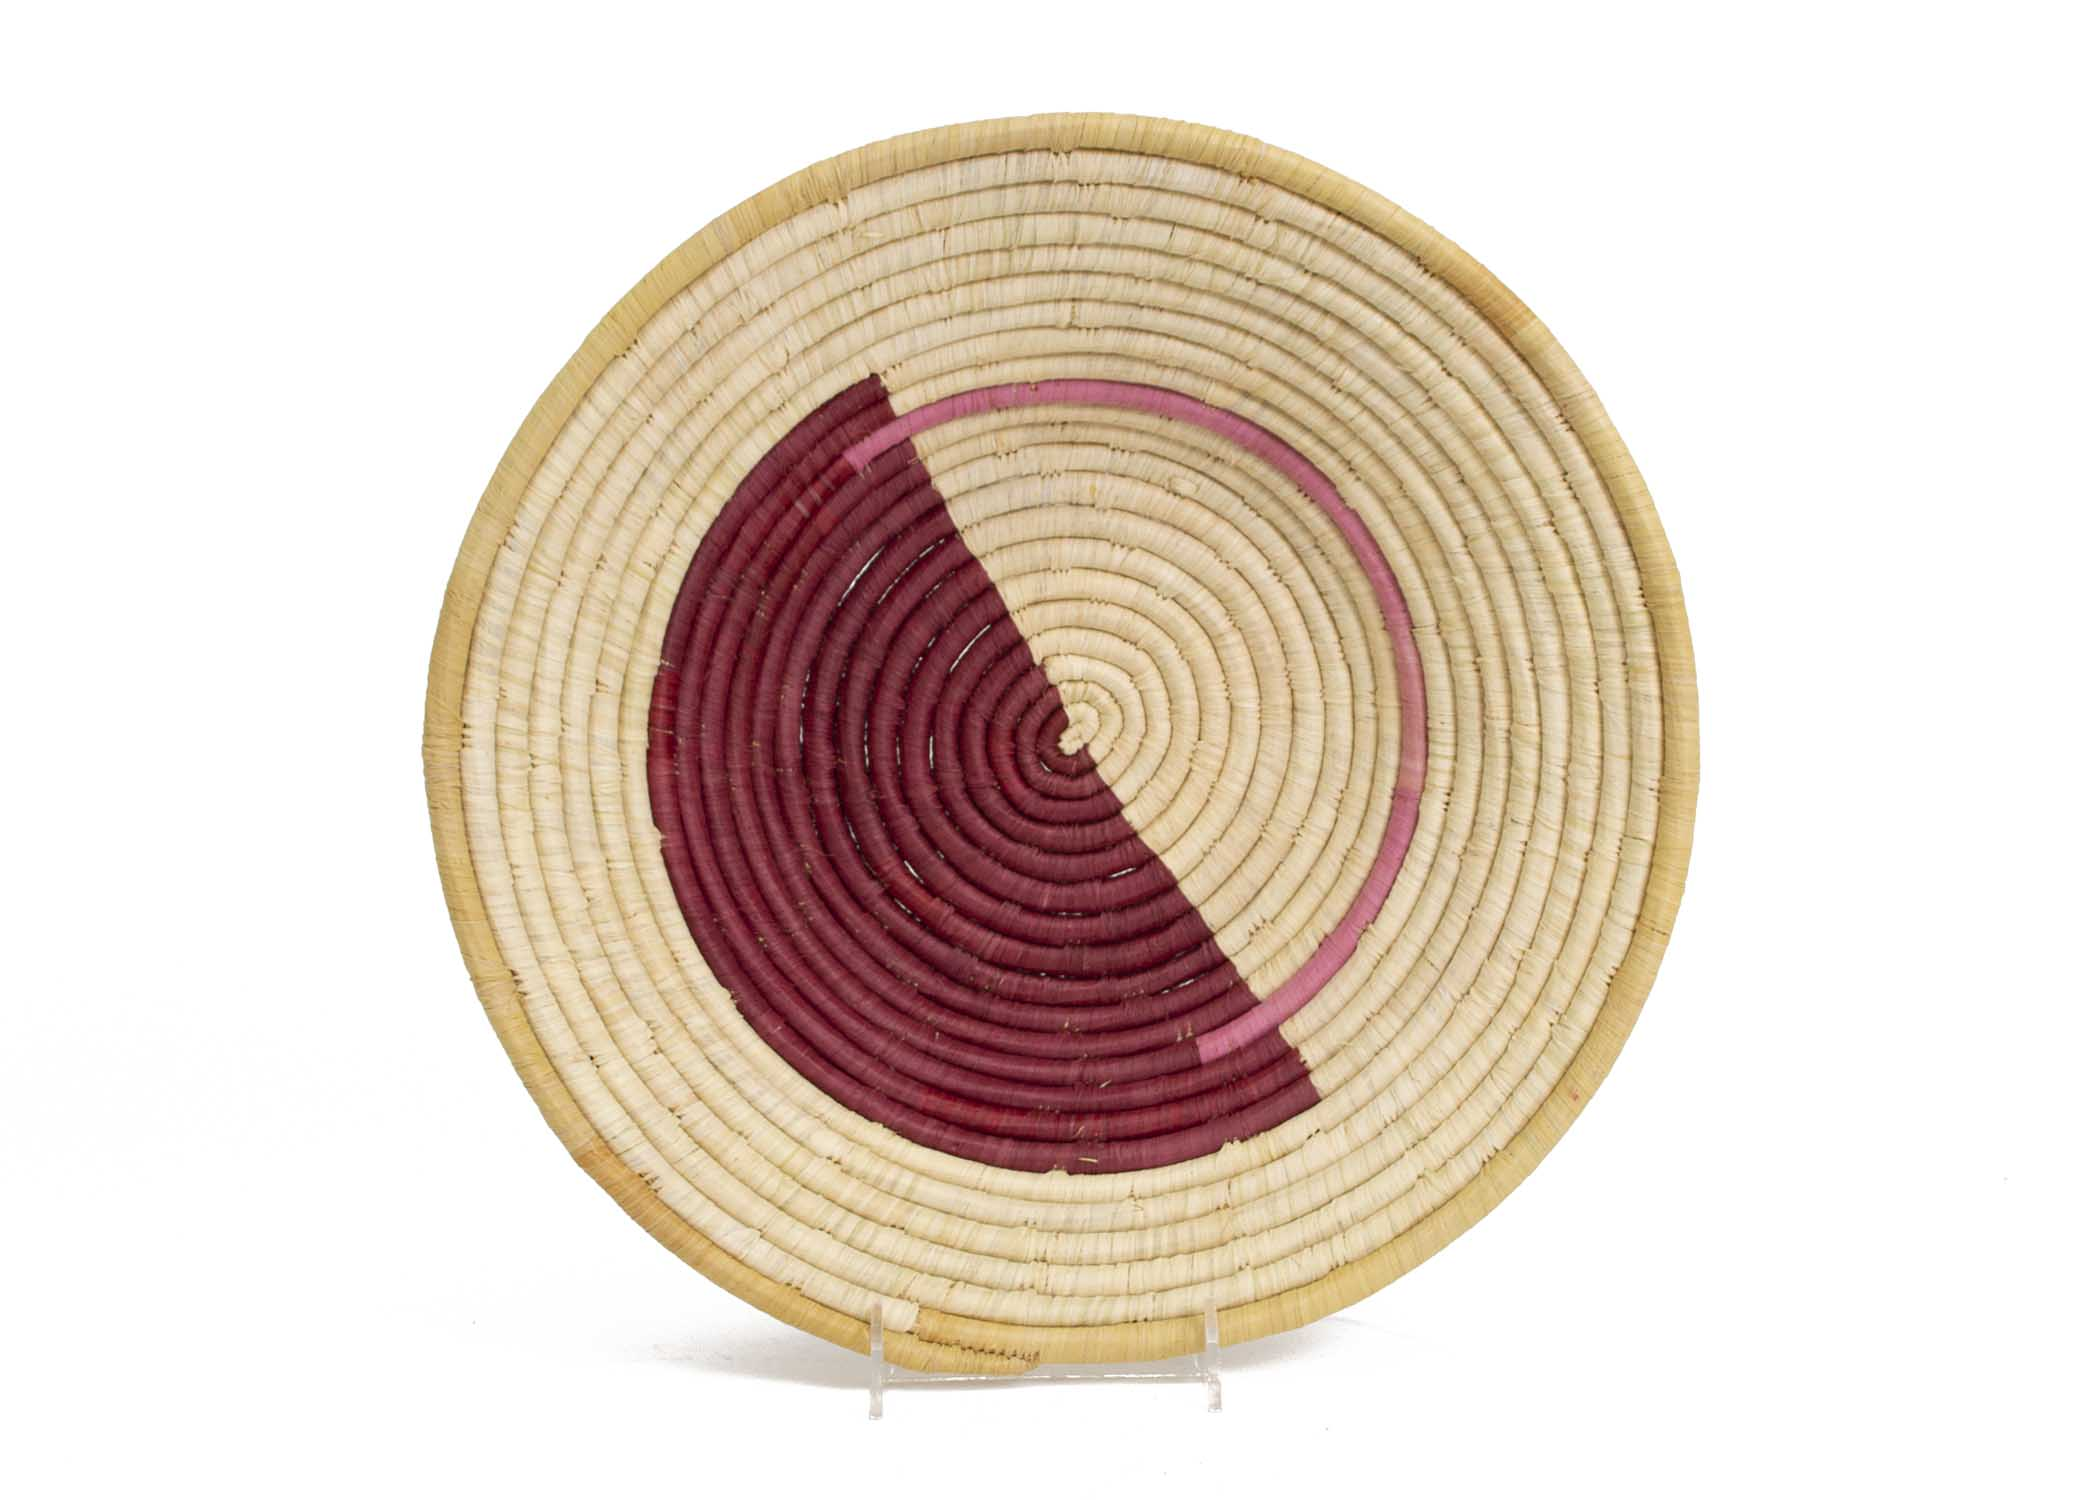 Geo Rosette Extra Large Raffia Bowl - KAZI - Artisan made high quality home decor and wall art